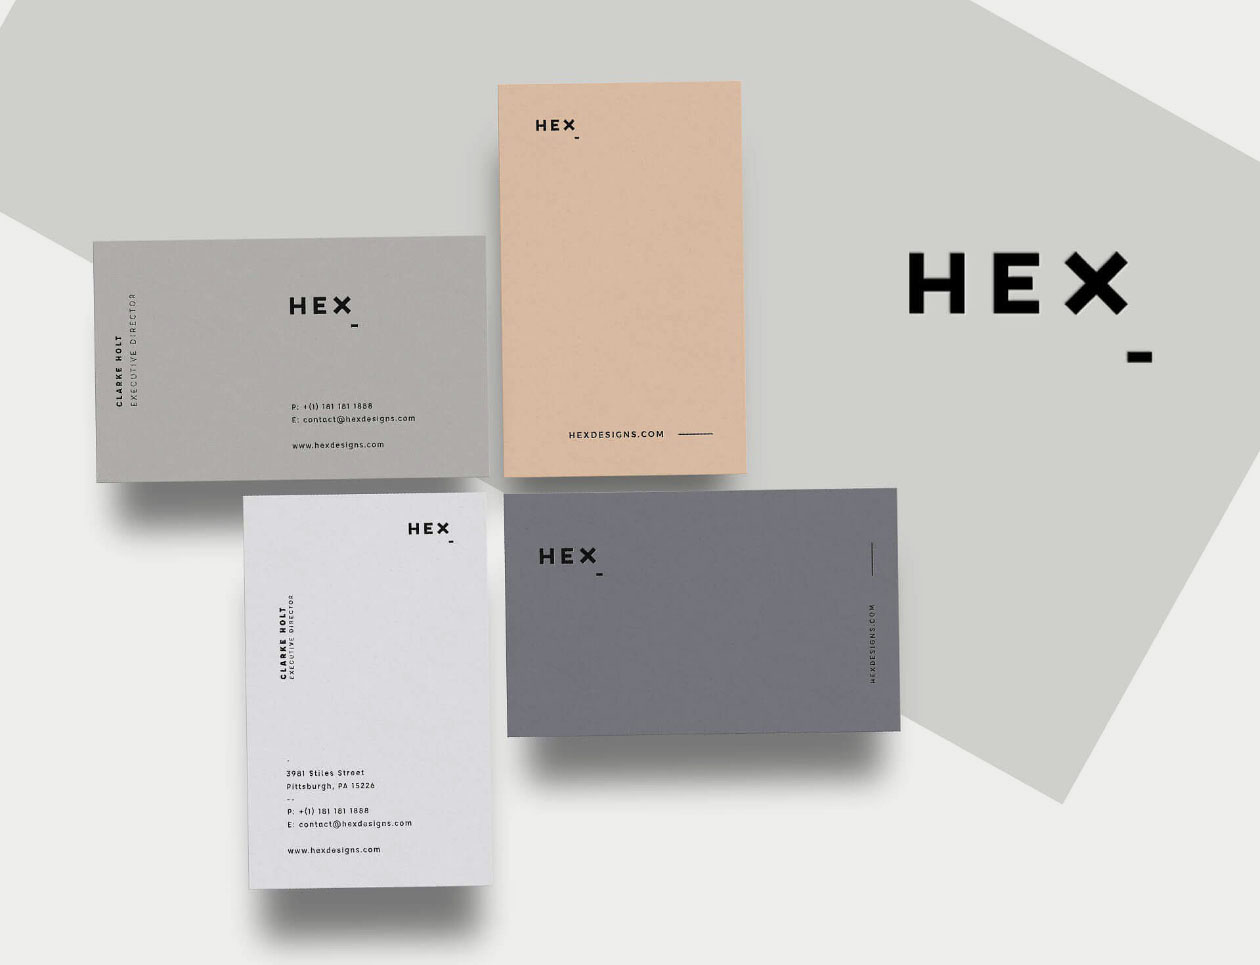 Hex business card print template hex business card print template business cards cheaphphosting Image collections